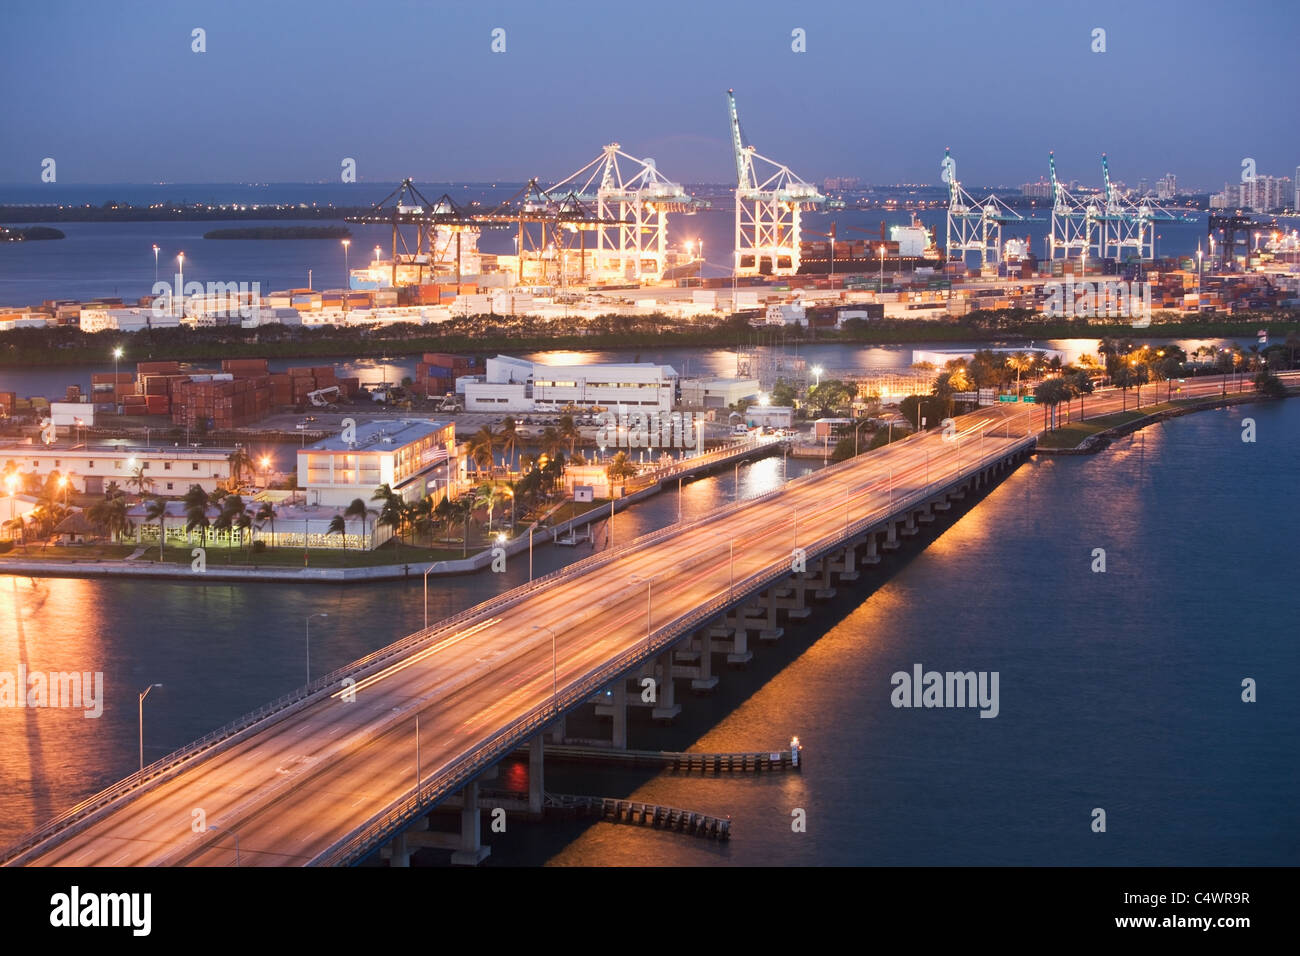 USA,Florida,Miami,Commercial dock at dusk - Stock Image